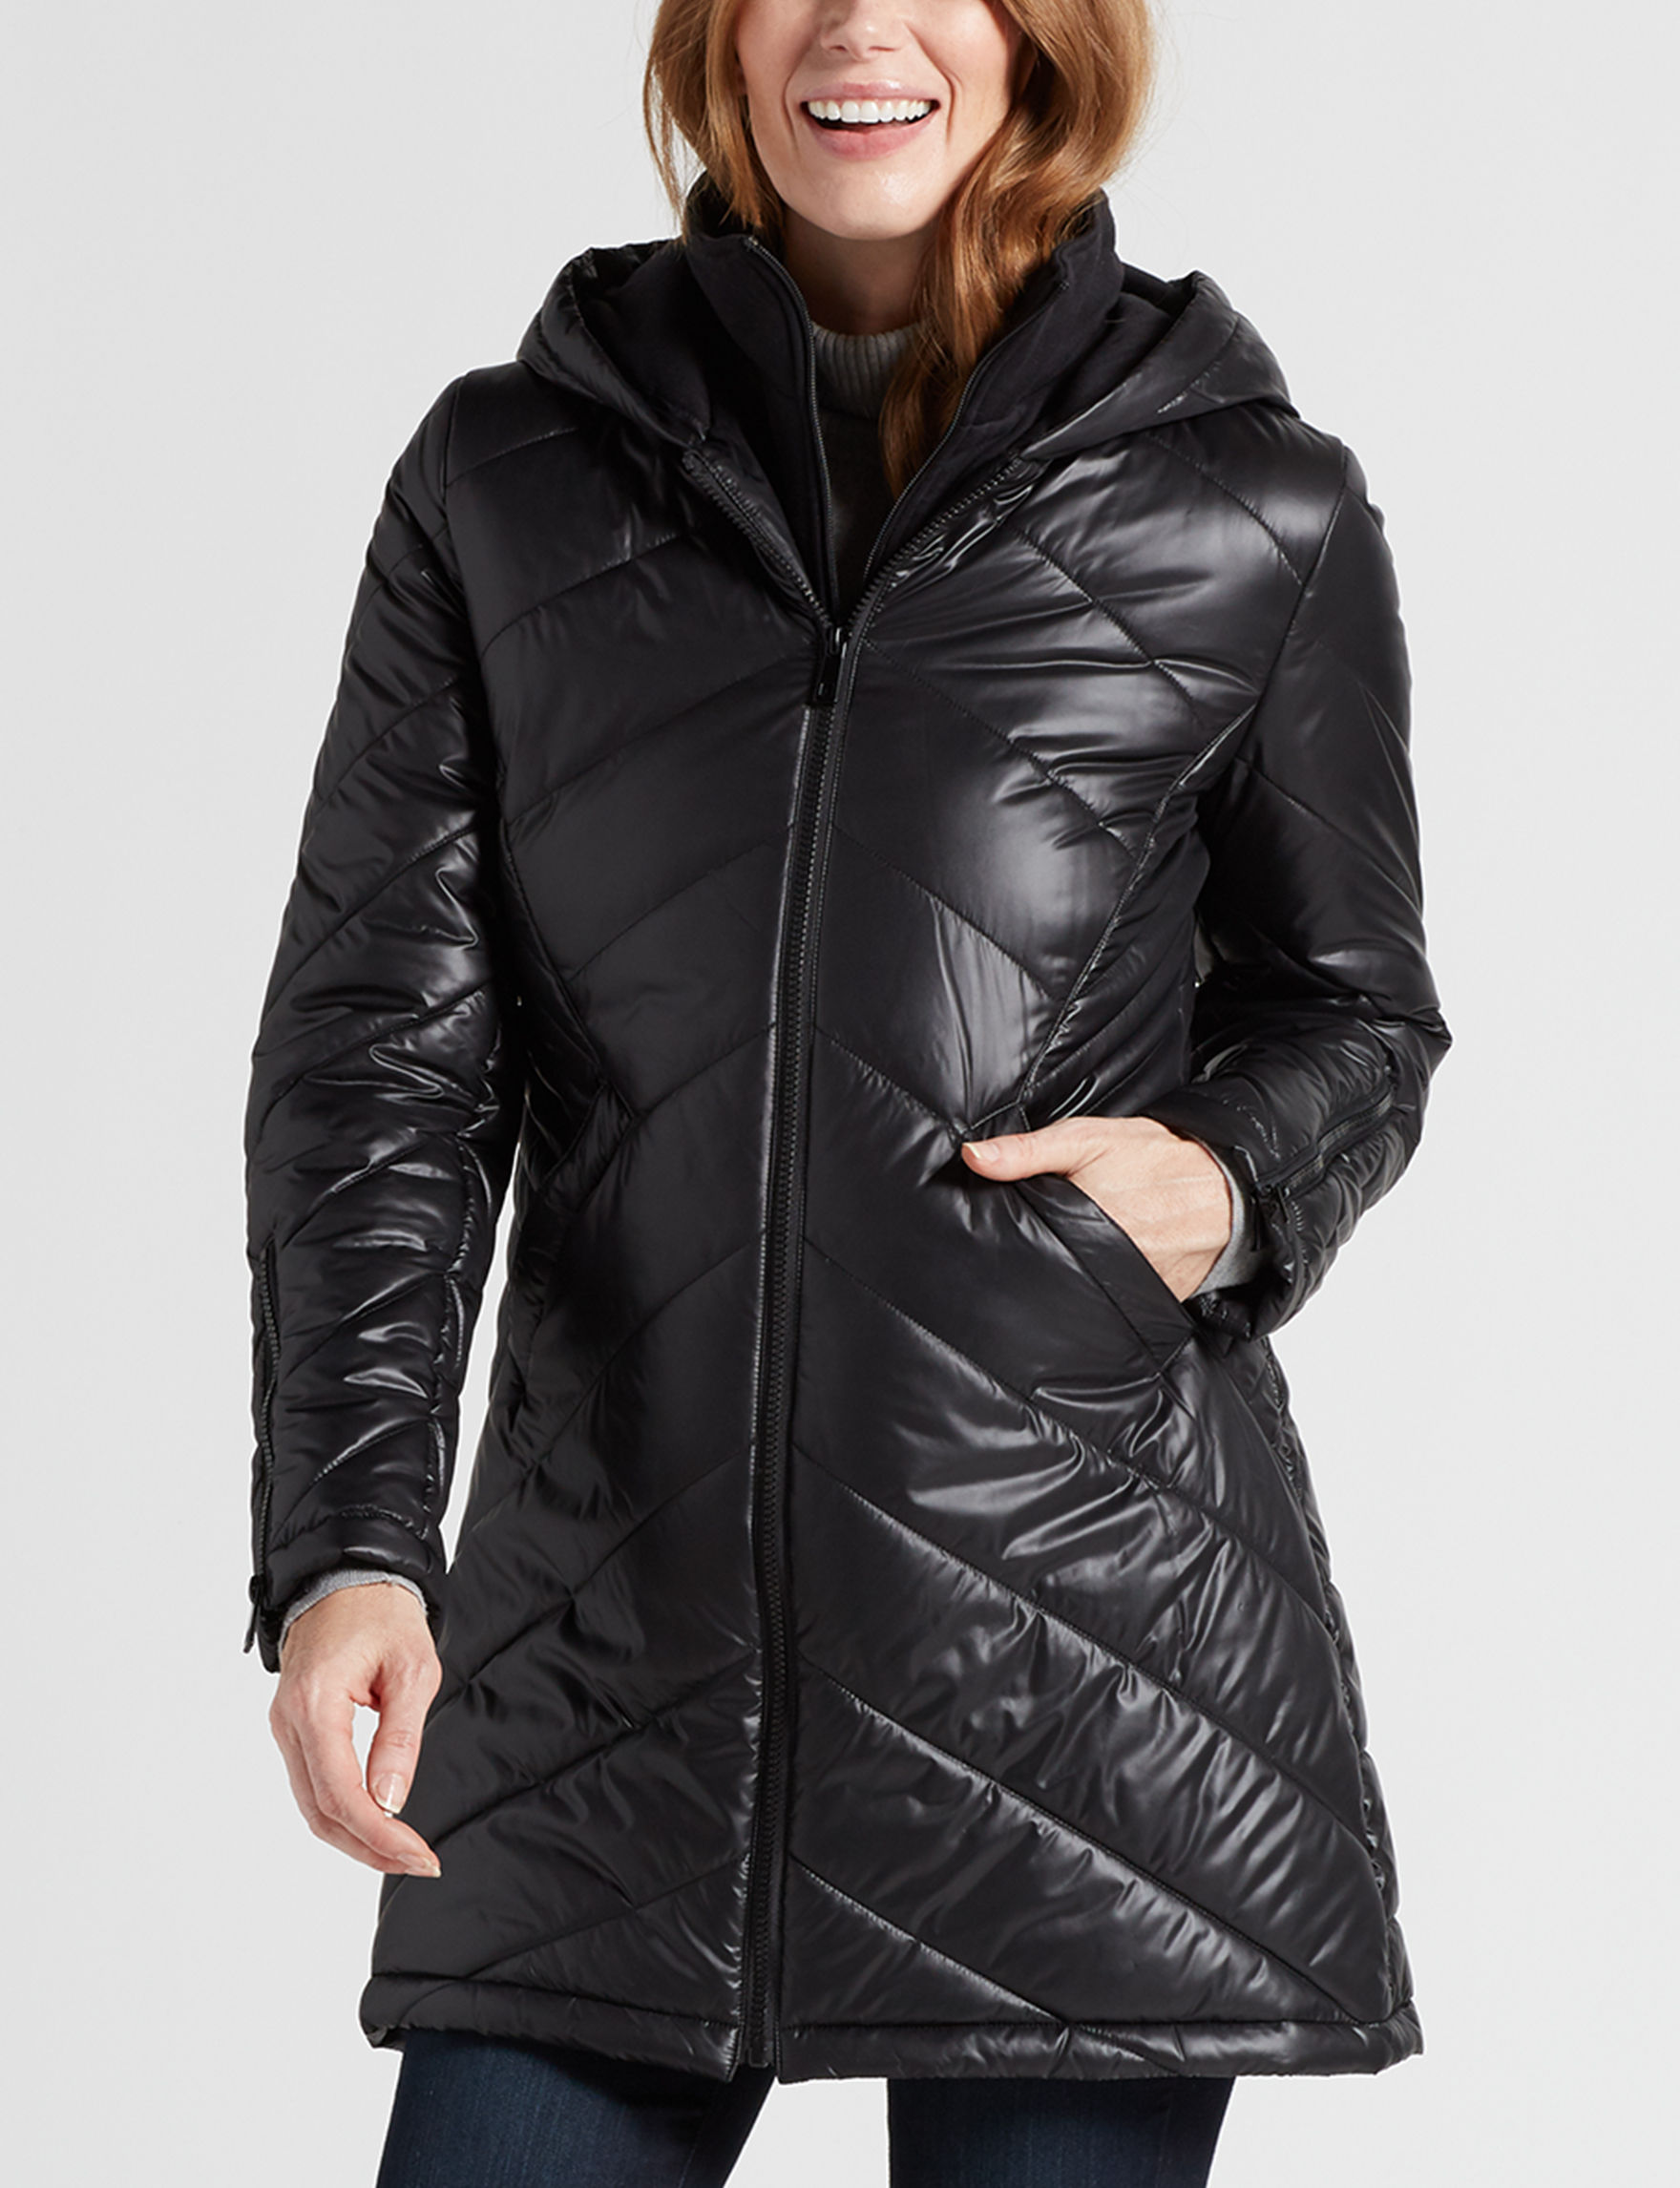 Maralyn & Me Black Puffer & Quilted Jackets